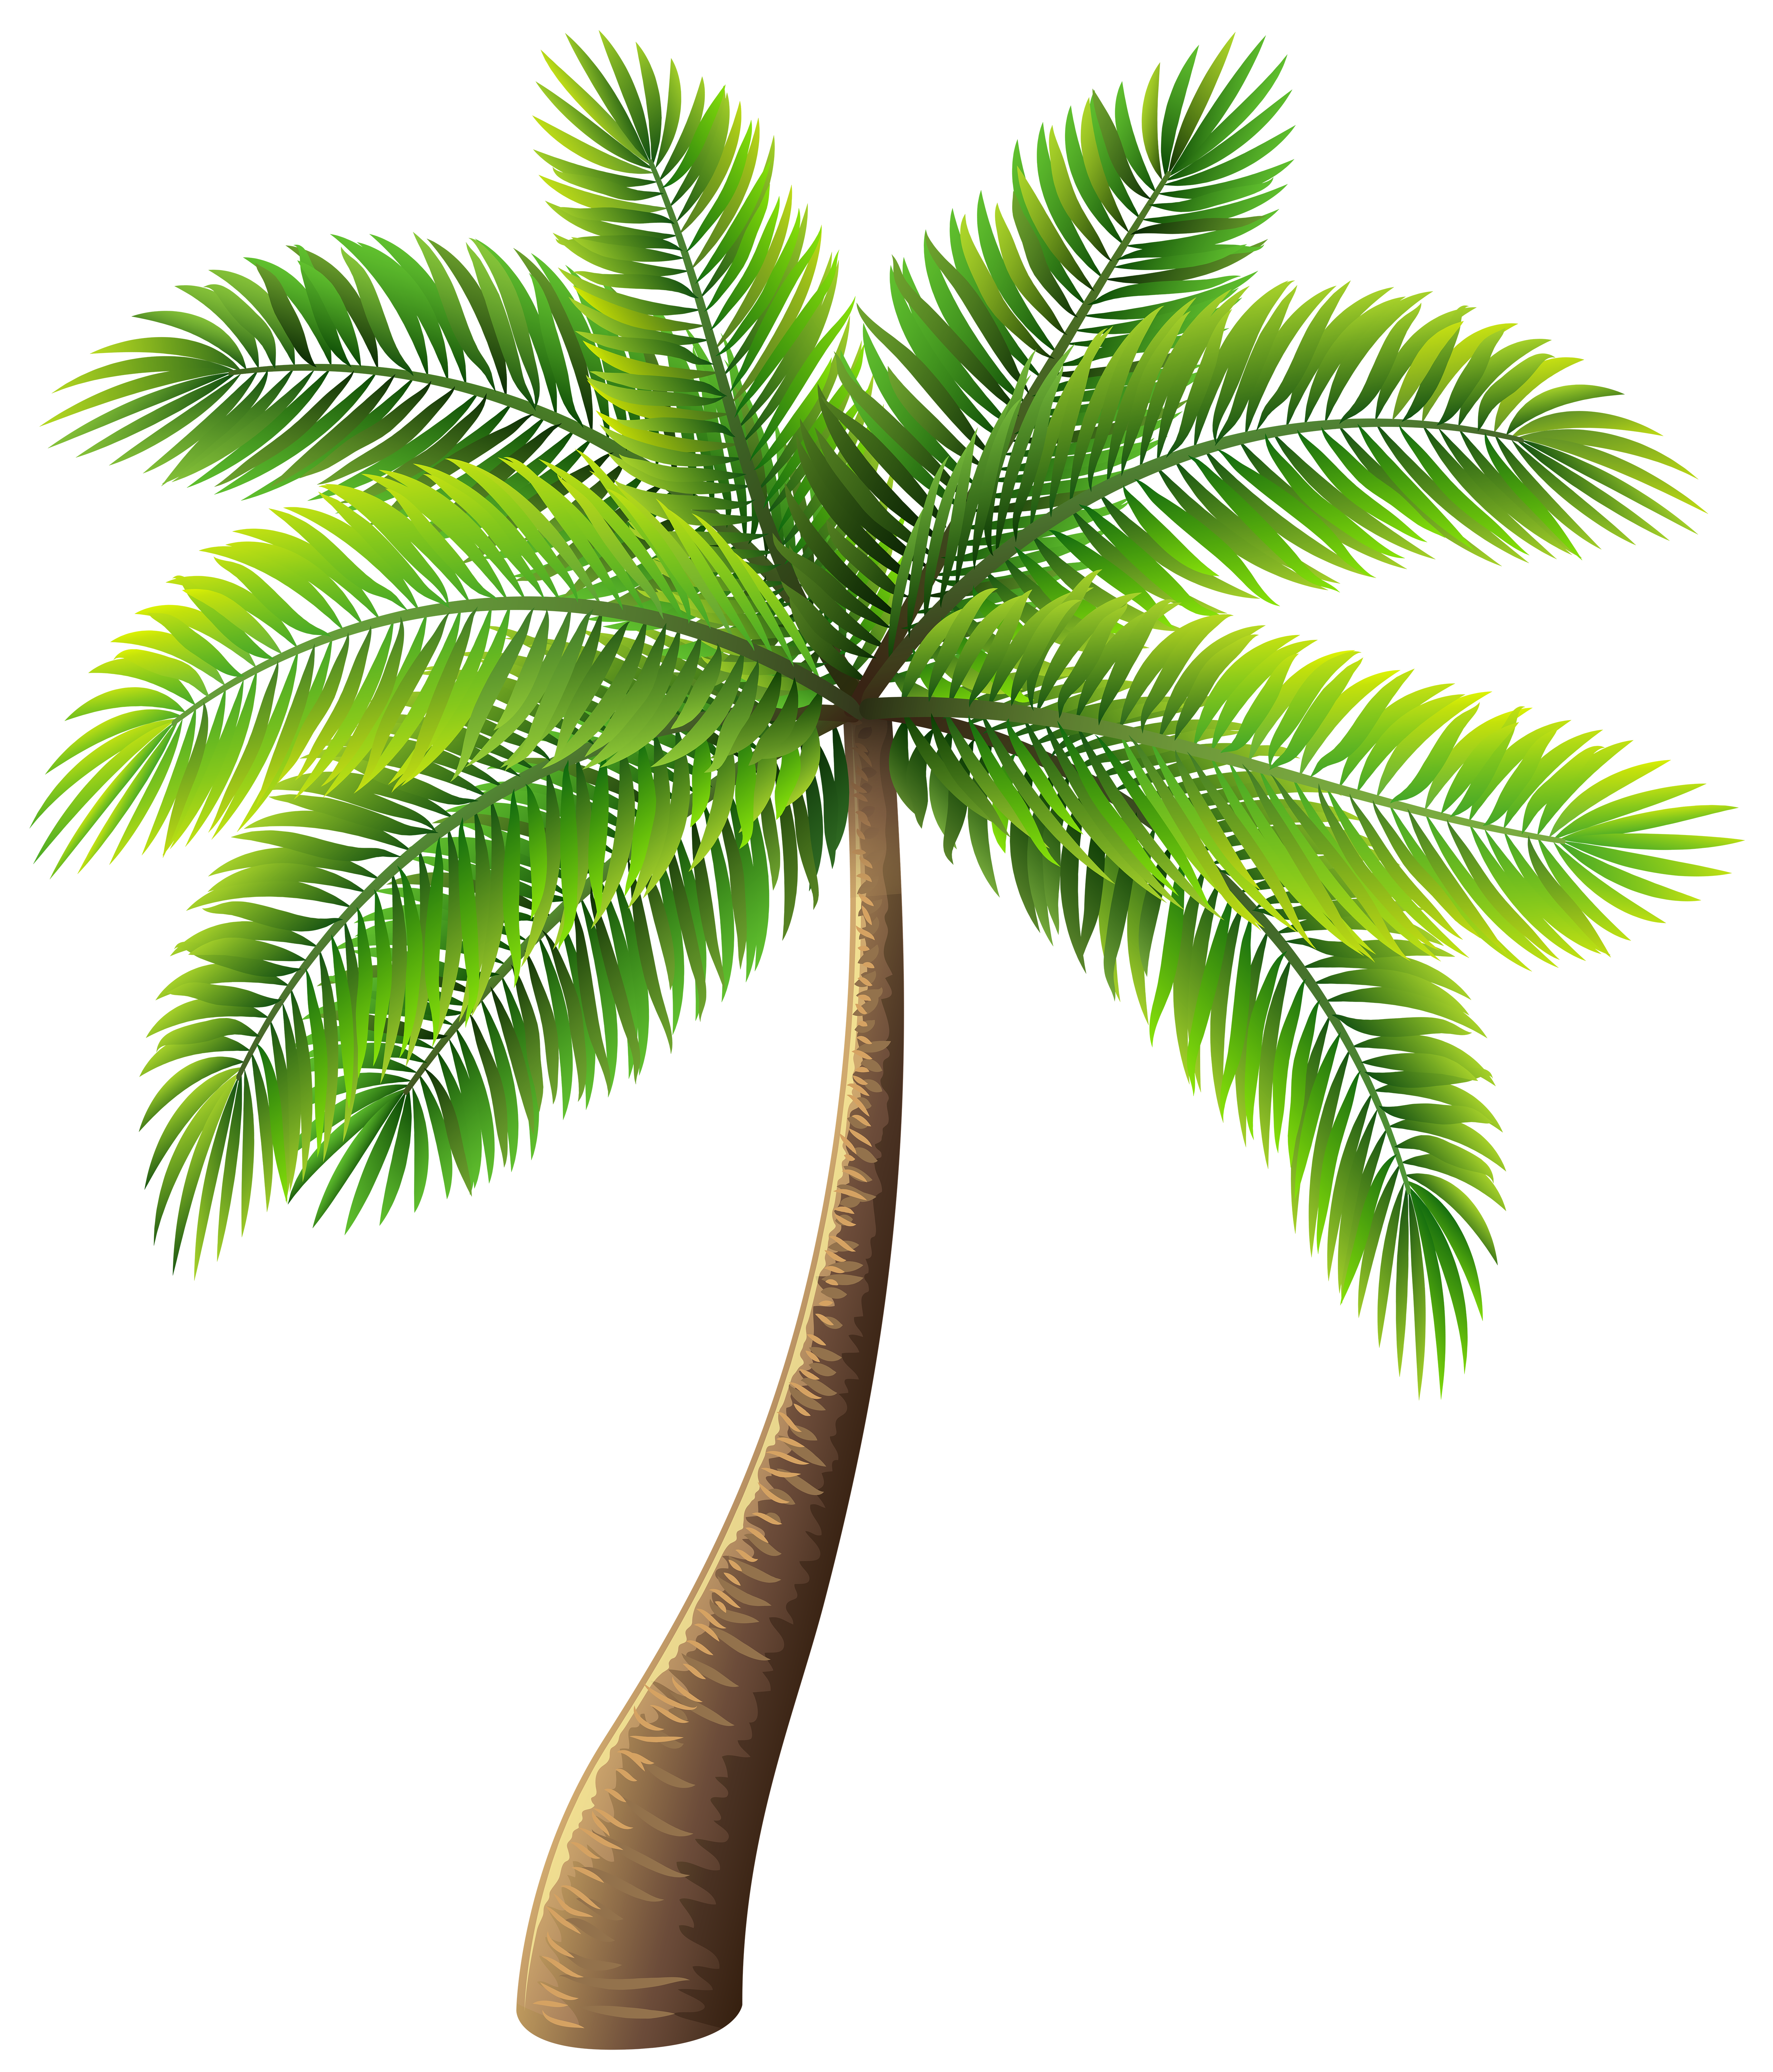 Palmrtree clipart vector freeuse download Palm Tree PNG Clip Art - Best WEB Clipart vector freeuse download